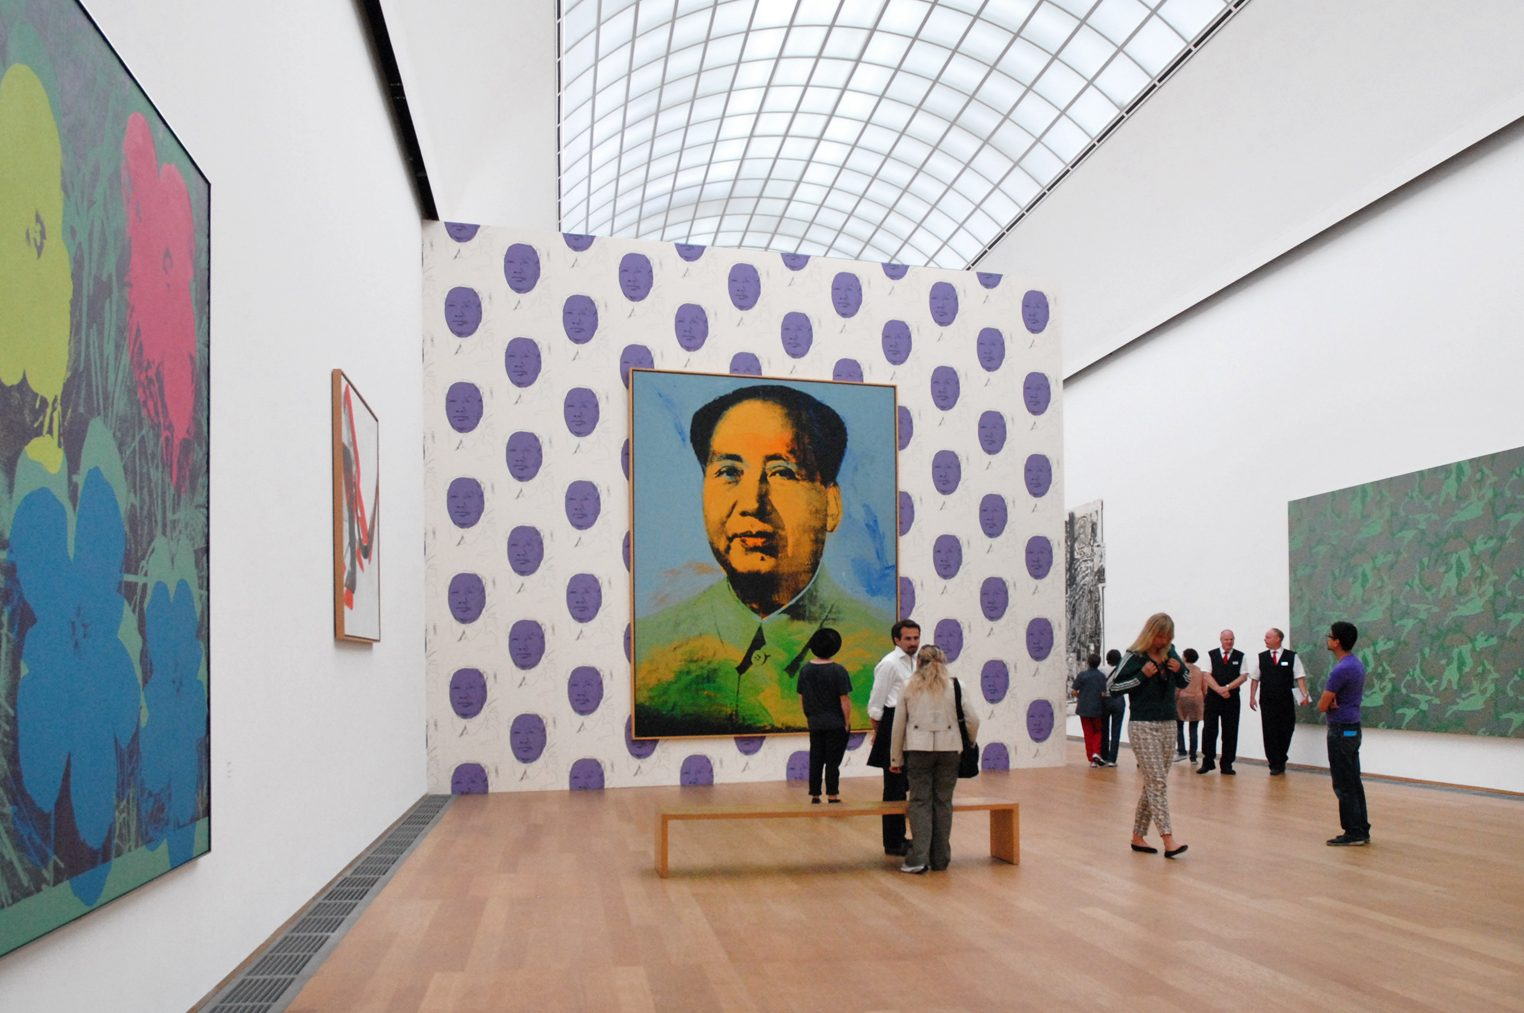 Discover Andy Warhol's Work Through This Virtual Tour andy warhol Discover Andy Warhol's Work Through This Virtual Tour Salle Andy Warhol Hamburger Bahnhof Berlin 6343757828 e1586308997123